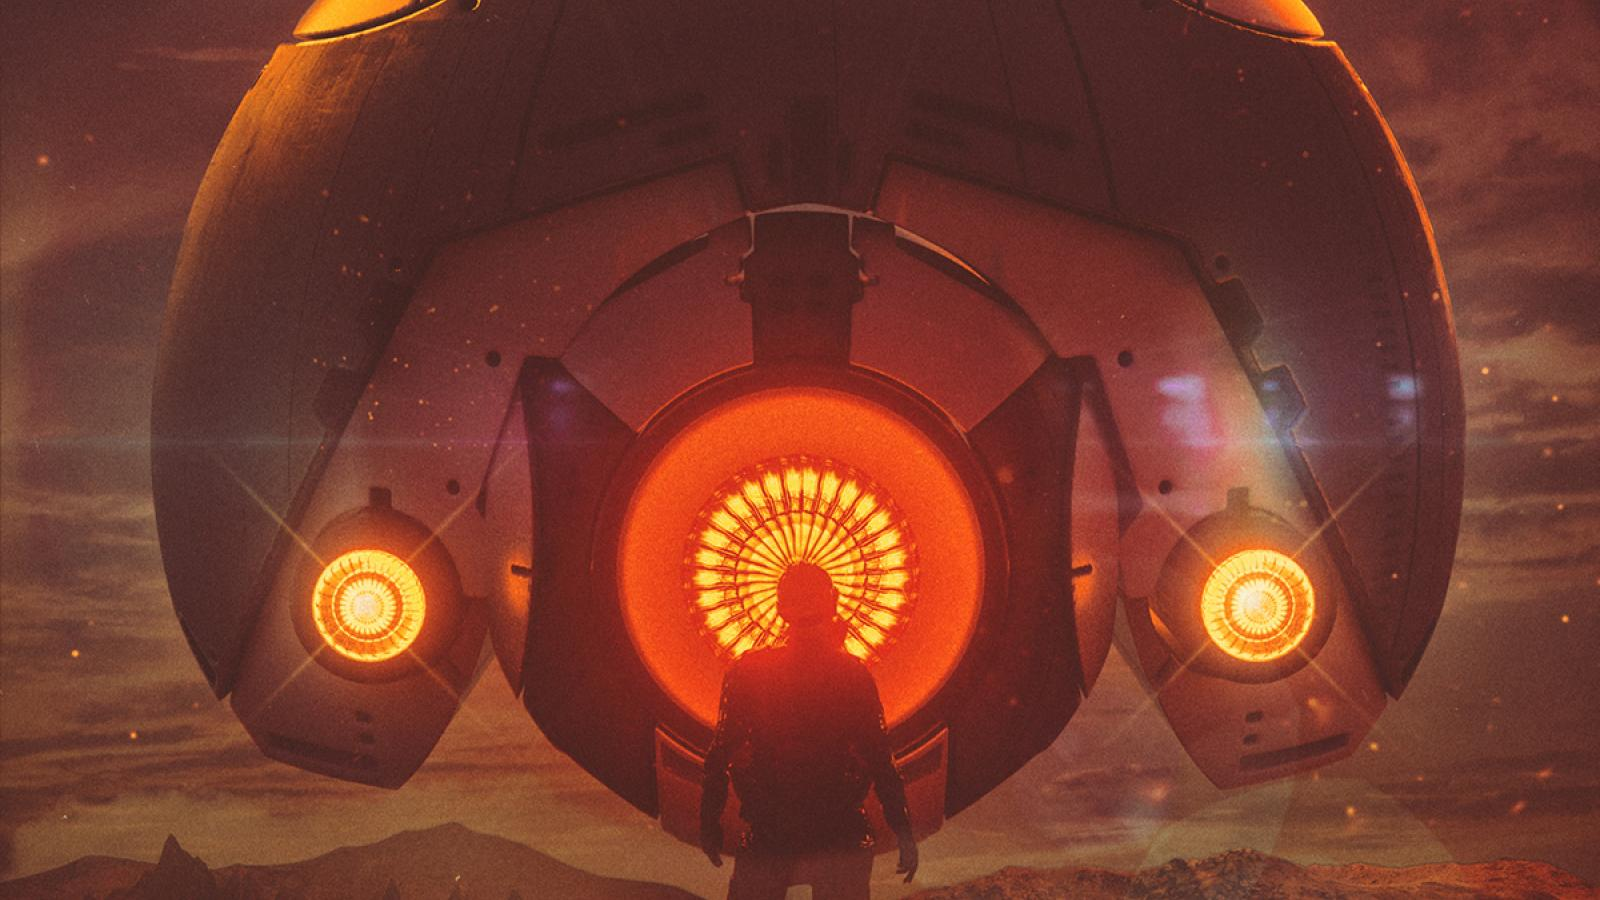 Incredible Illustrations by Beeple